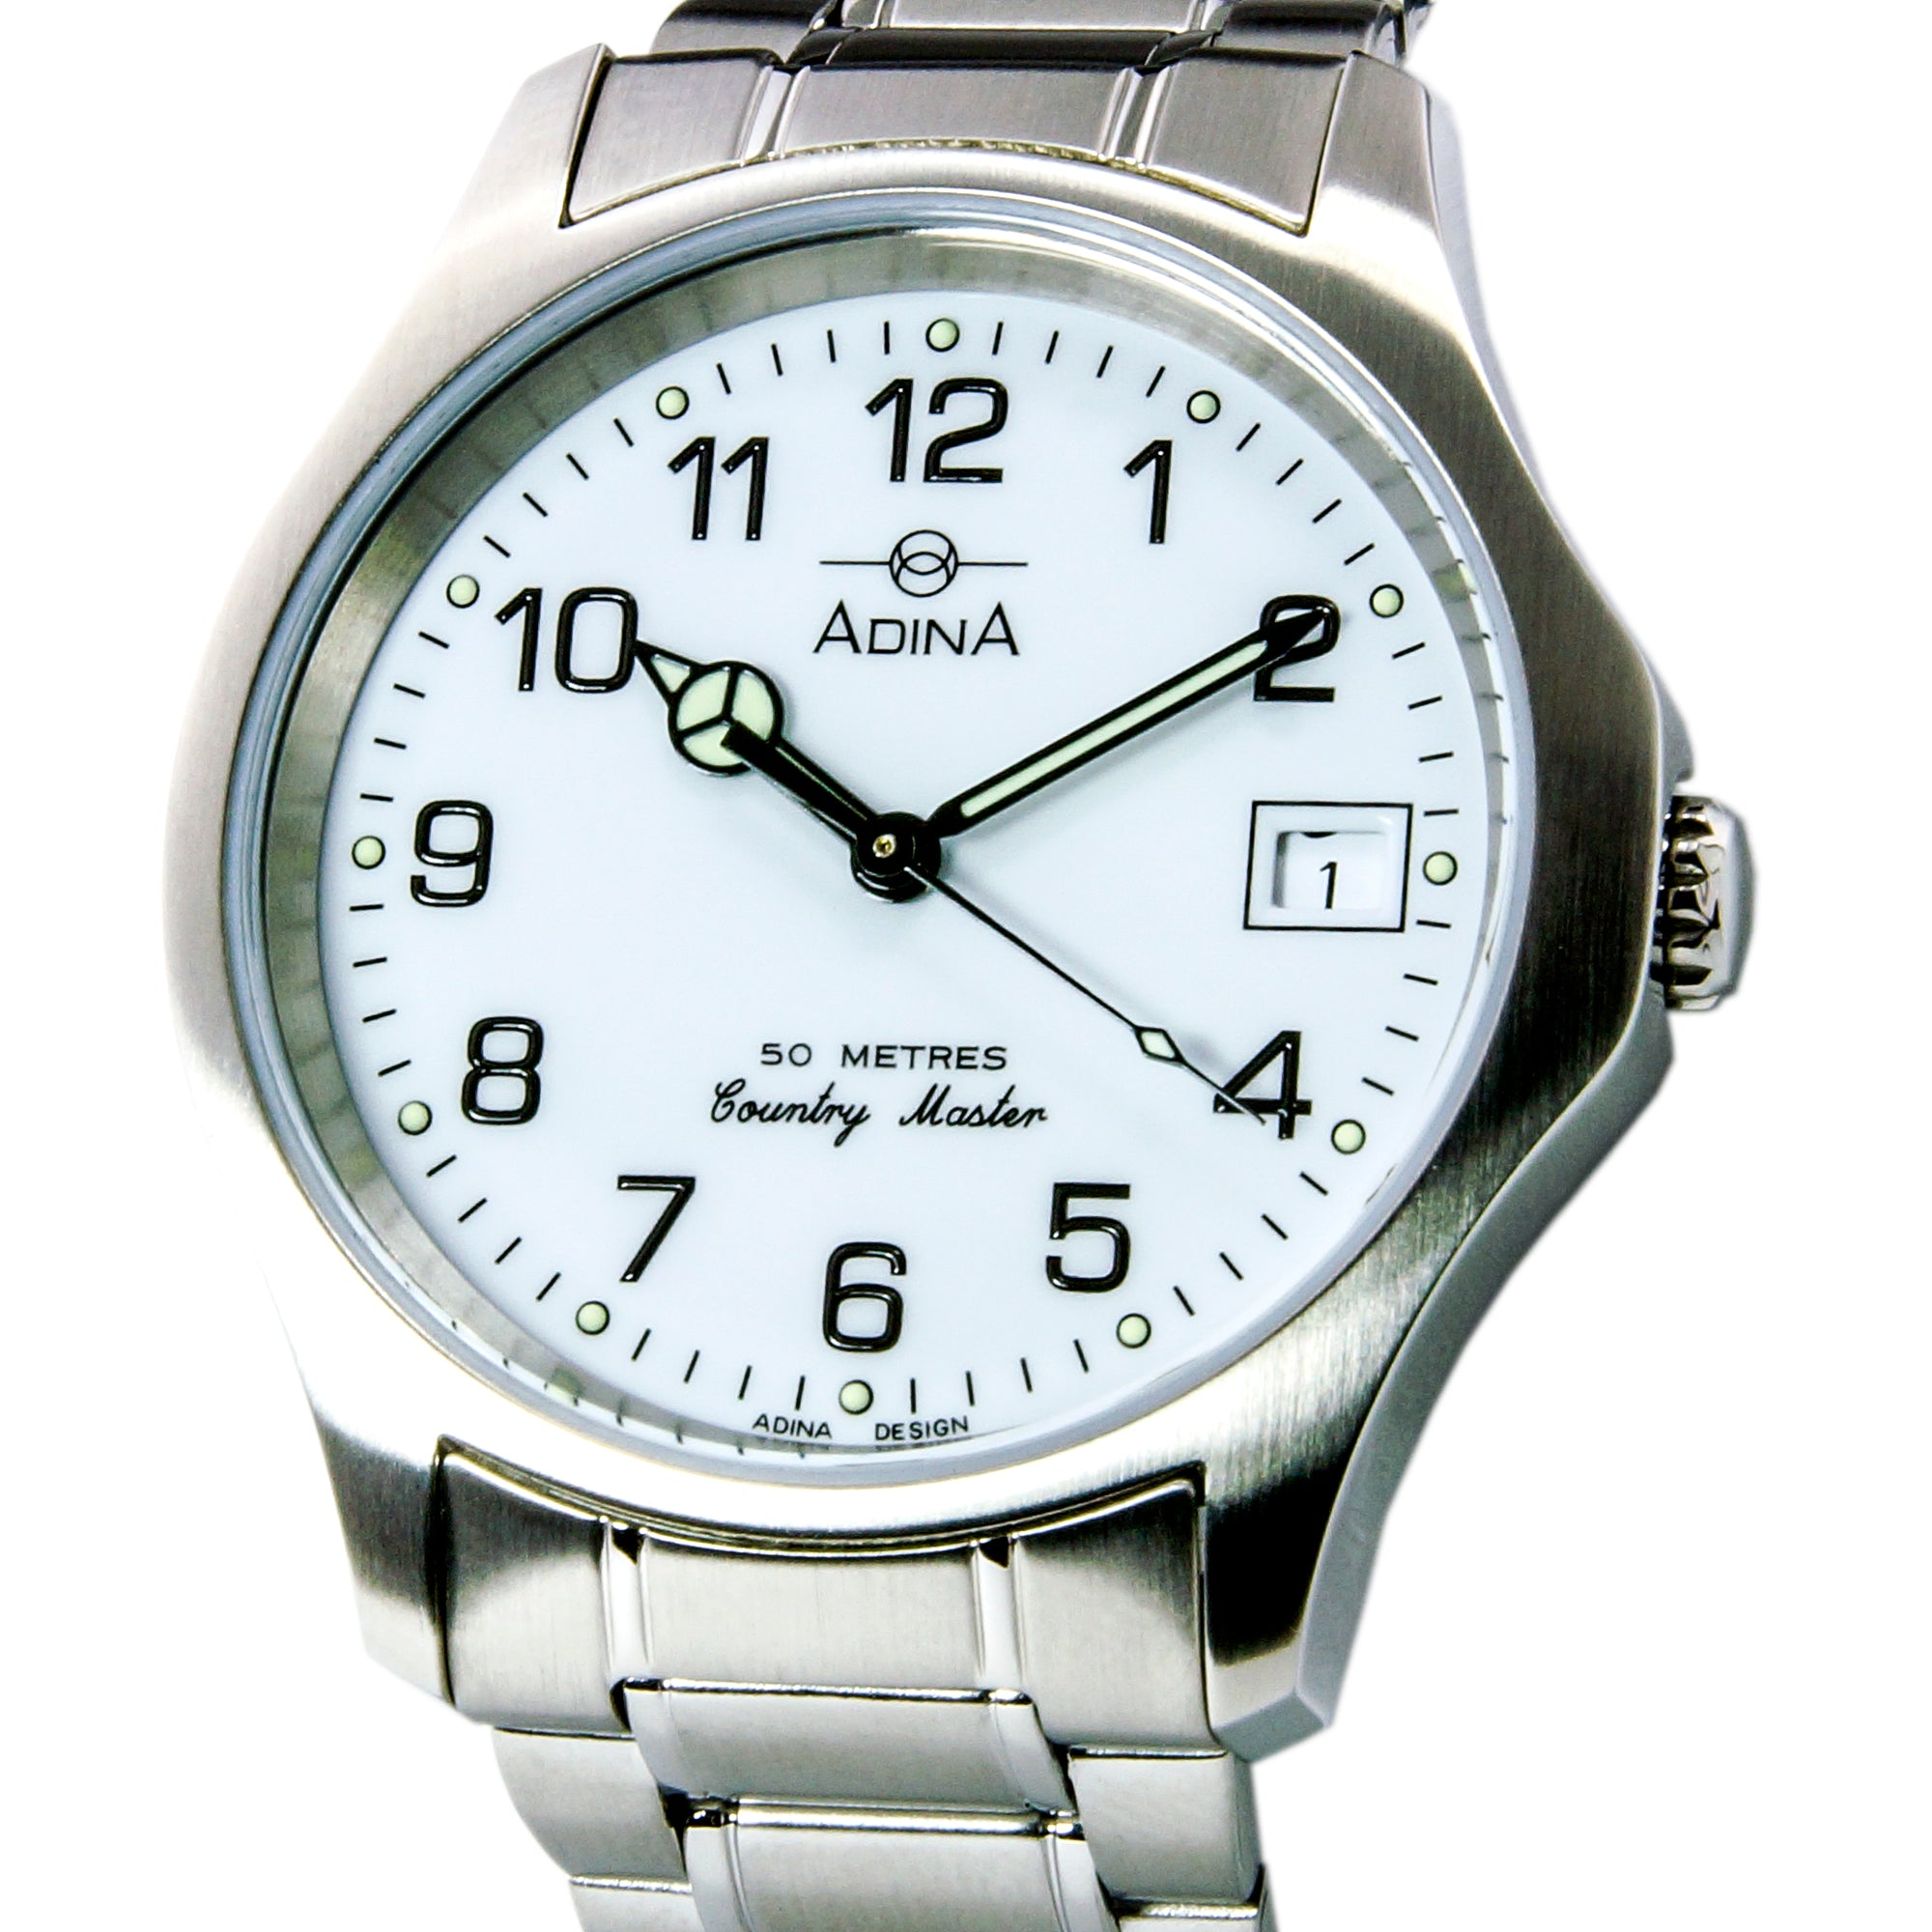 Adina Gents Country Master Watch